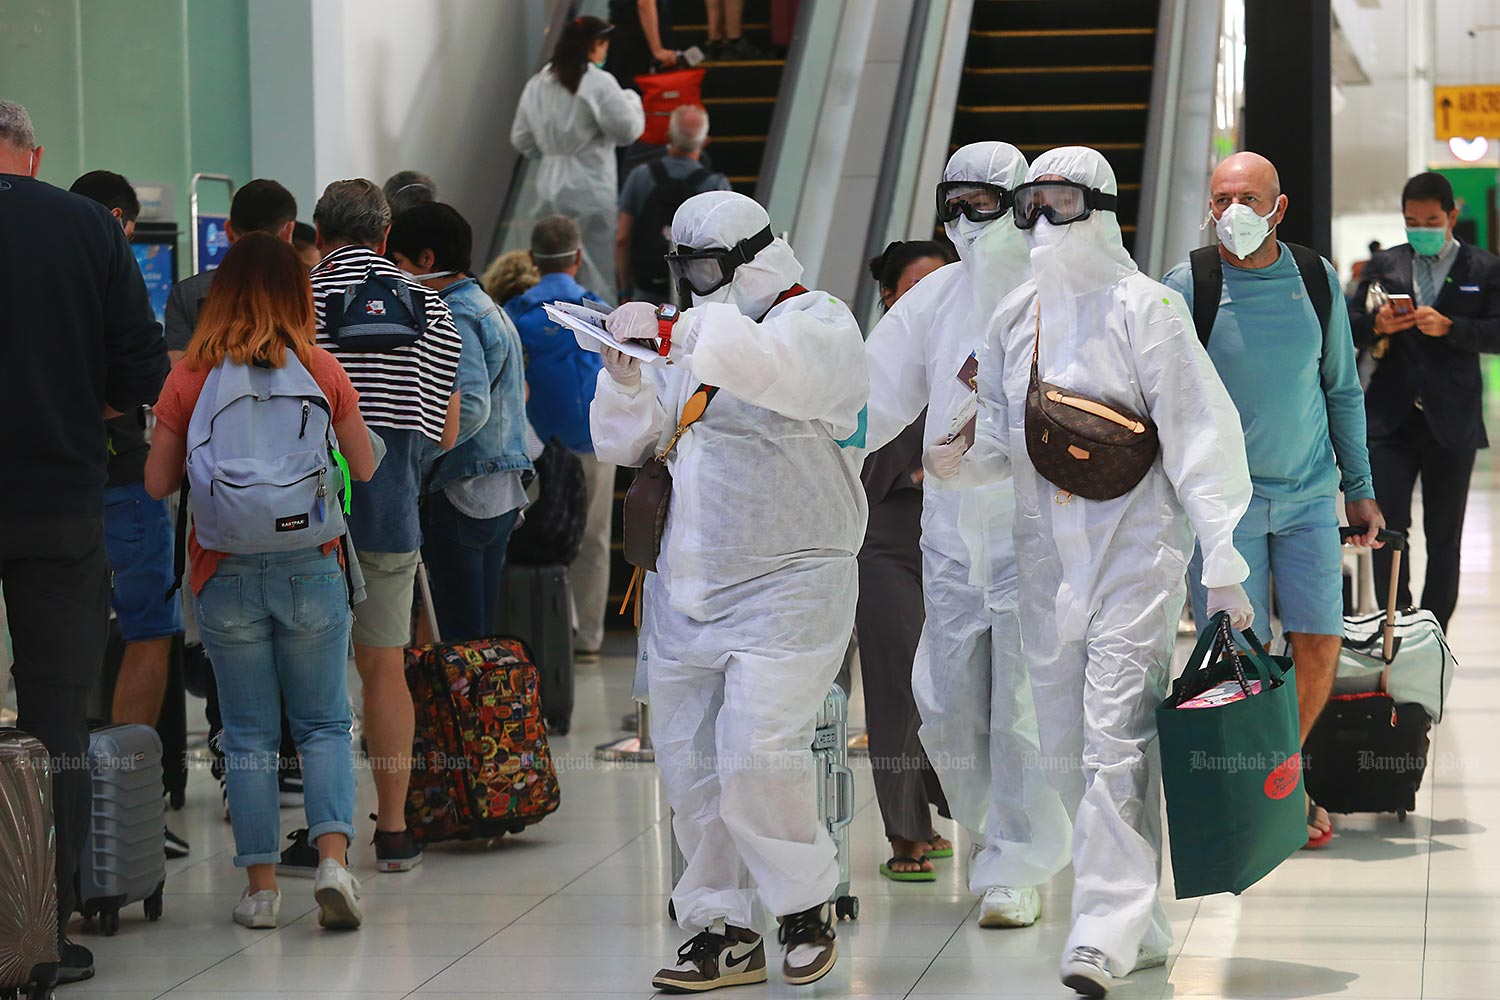 Tourists wear protective suits and goggles as they queue to board flights at Suvarnabhumi Airport. (Photo by Somchai Poomlard)